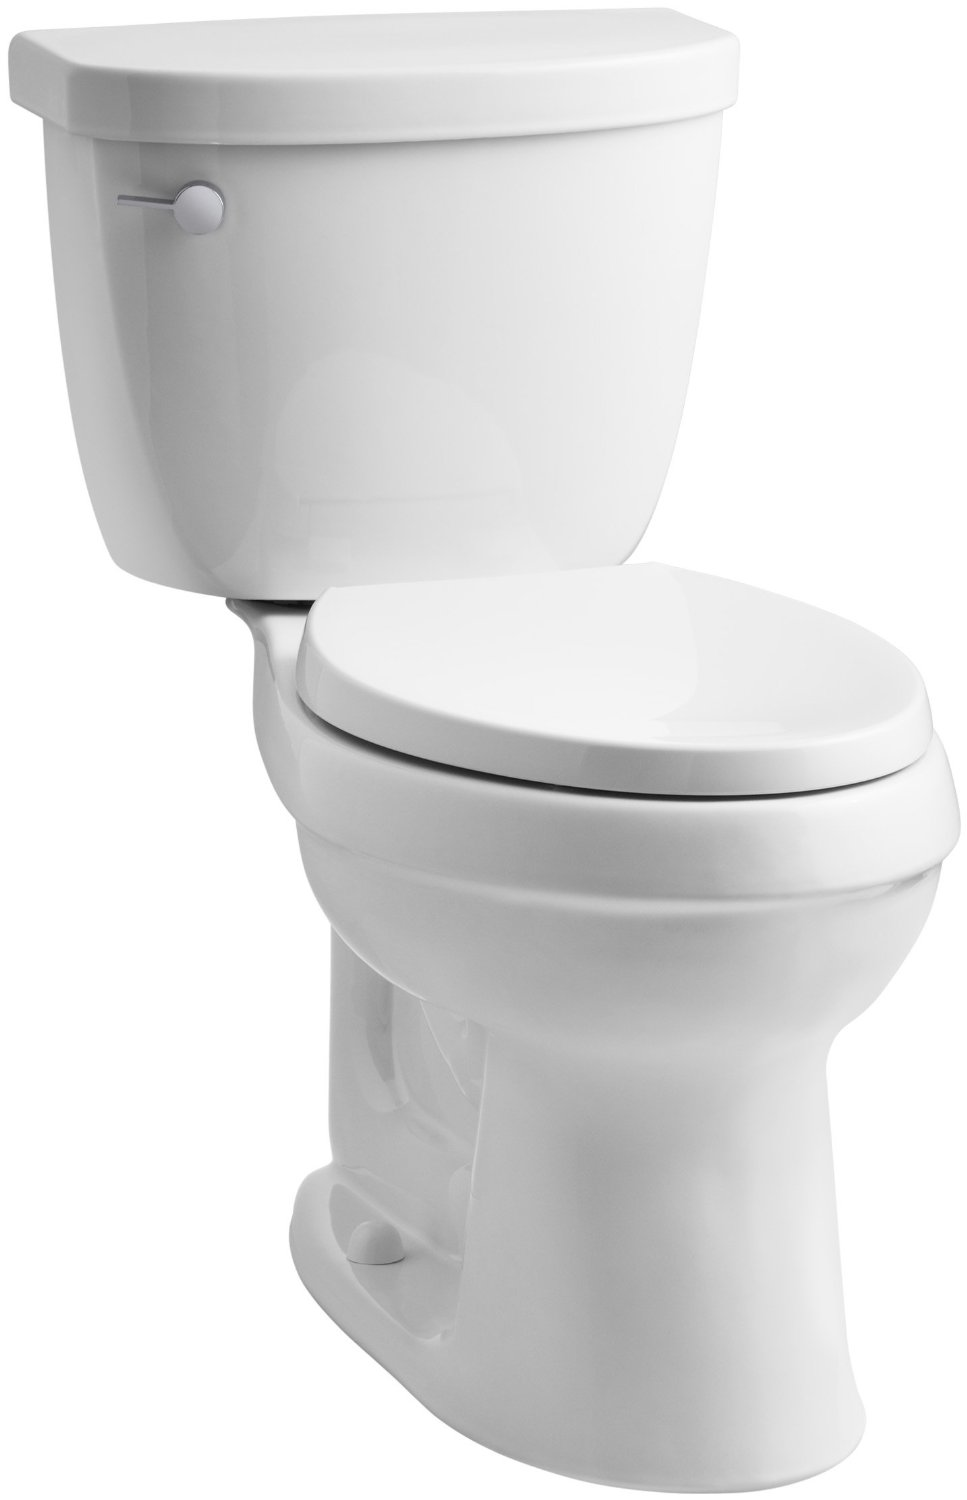 Best Kohler Toilet Reviews 2019 Which Is Really Better